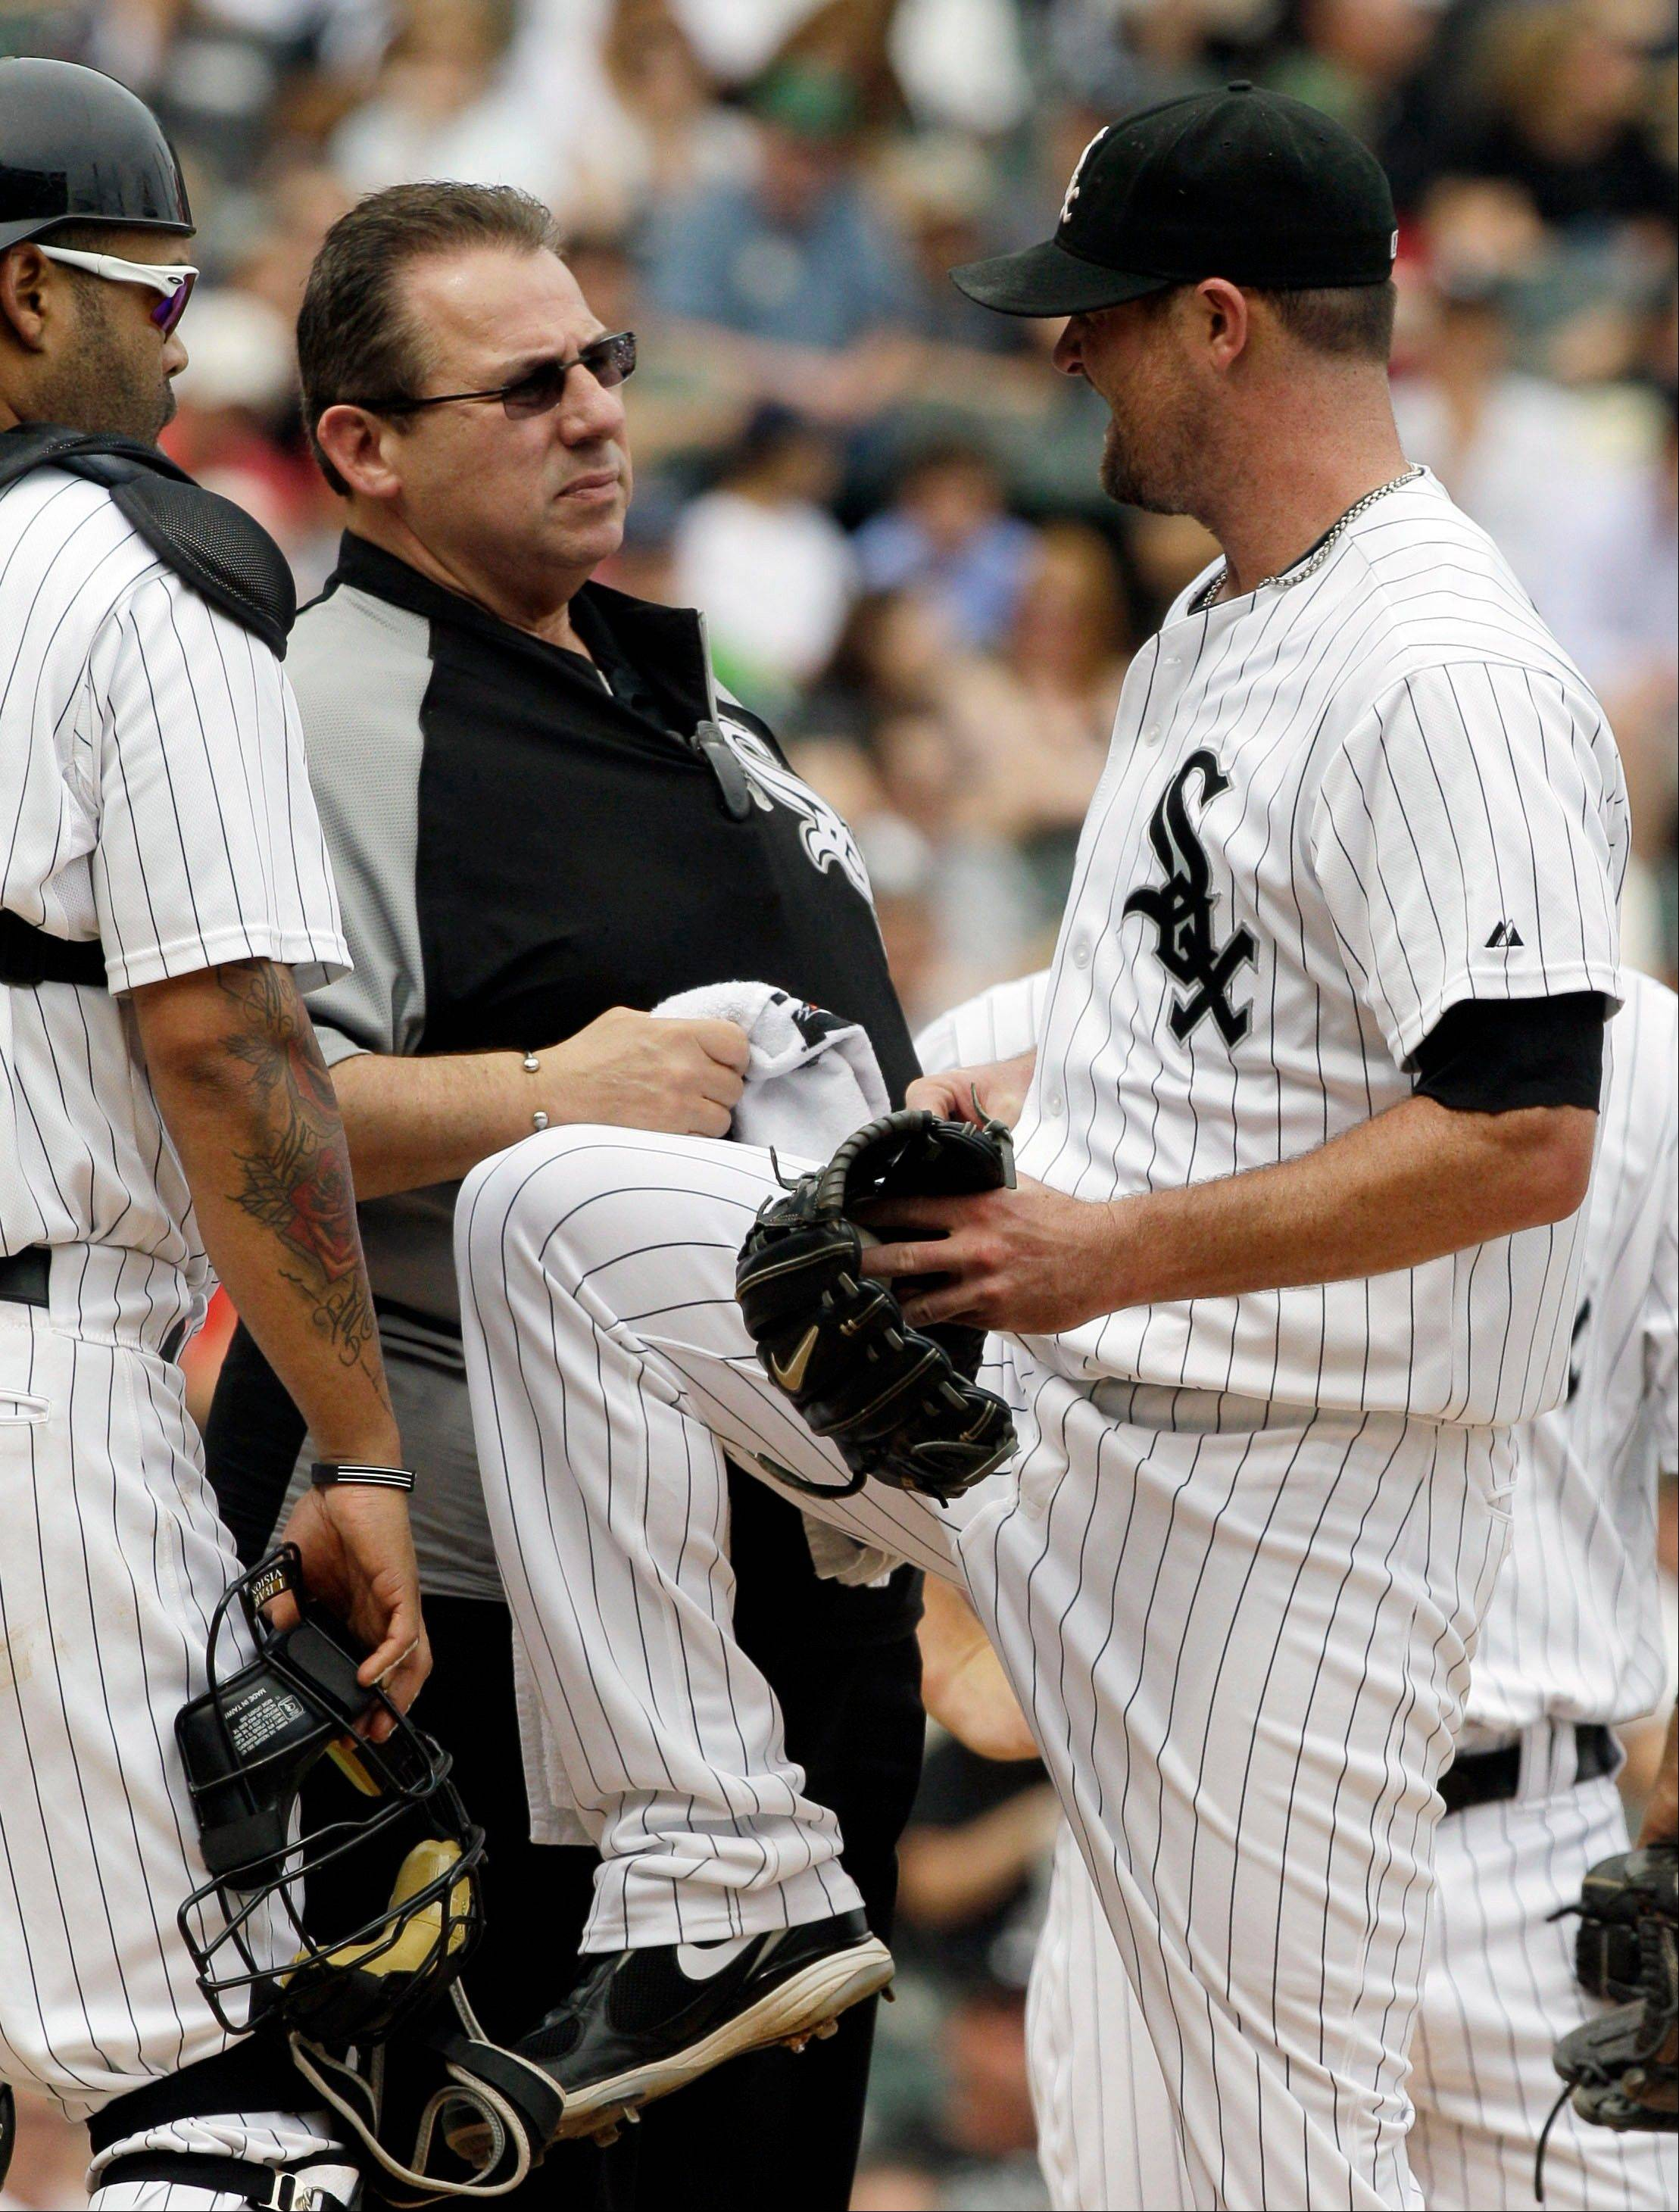 White Sox starter John Danks had to leave in the second inning with a strained right oblique.